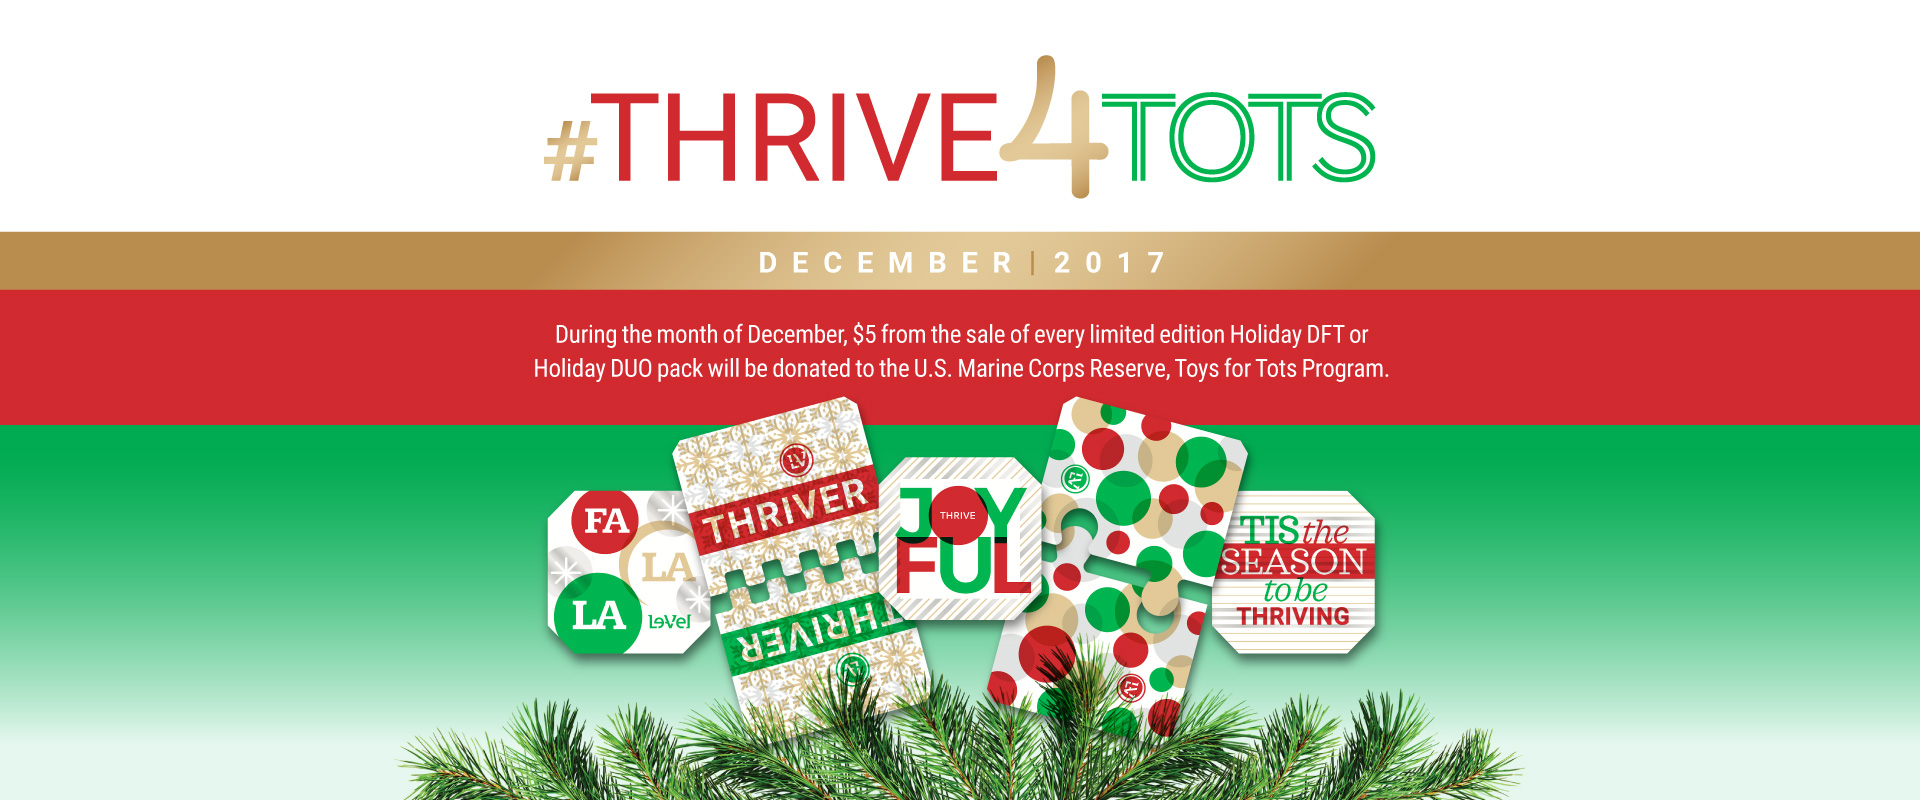 Holiday DFT and DUO - #THRIVE4TOTS